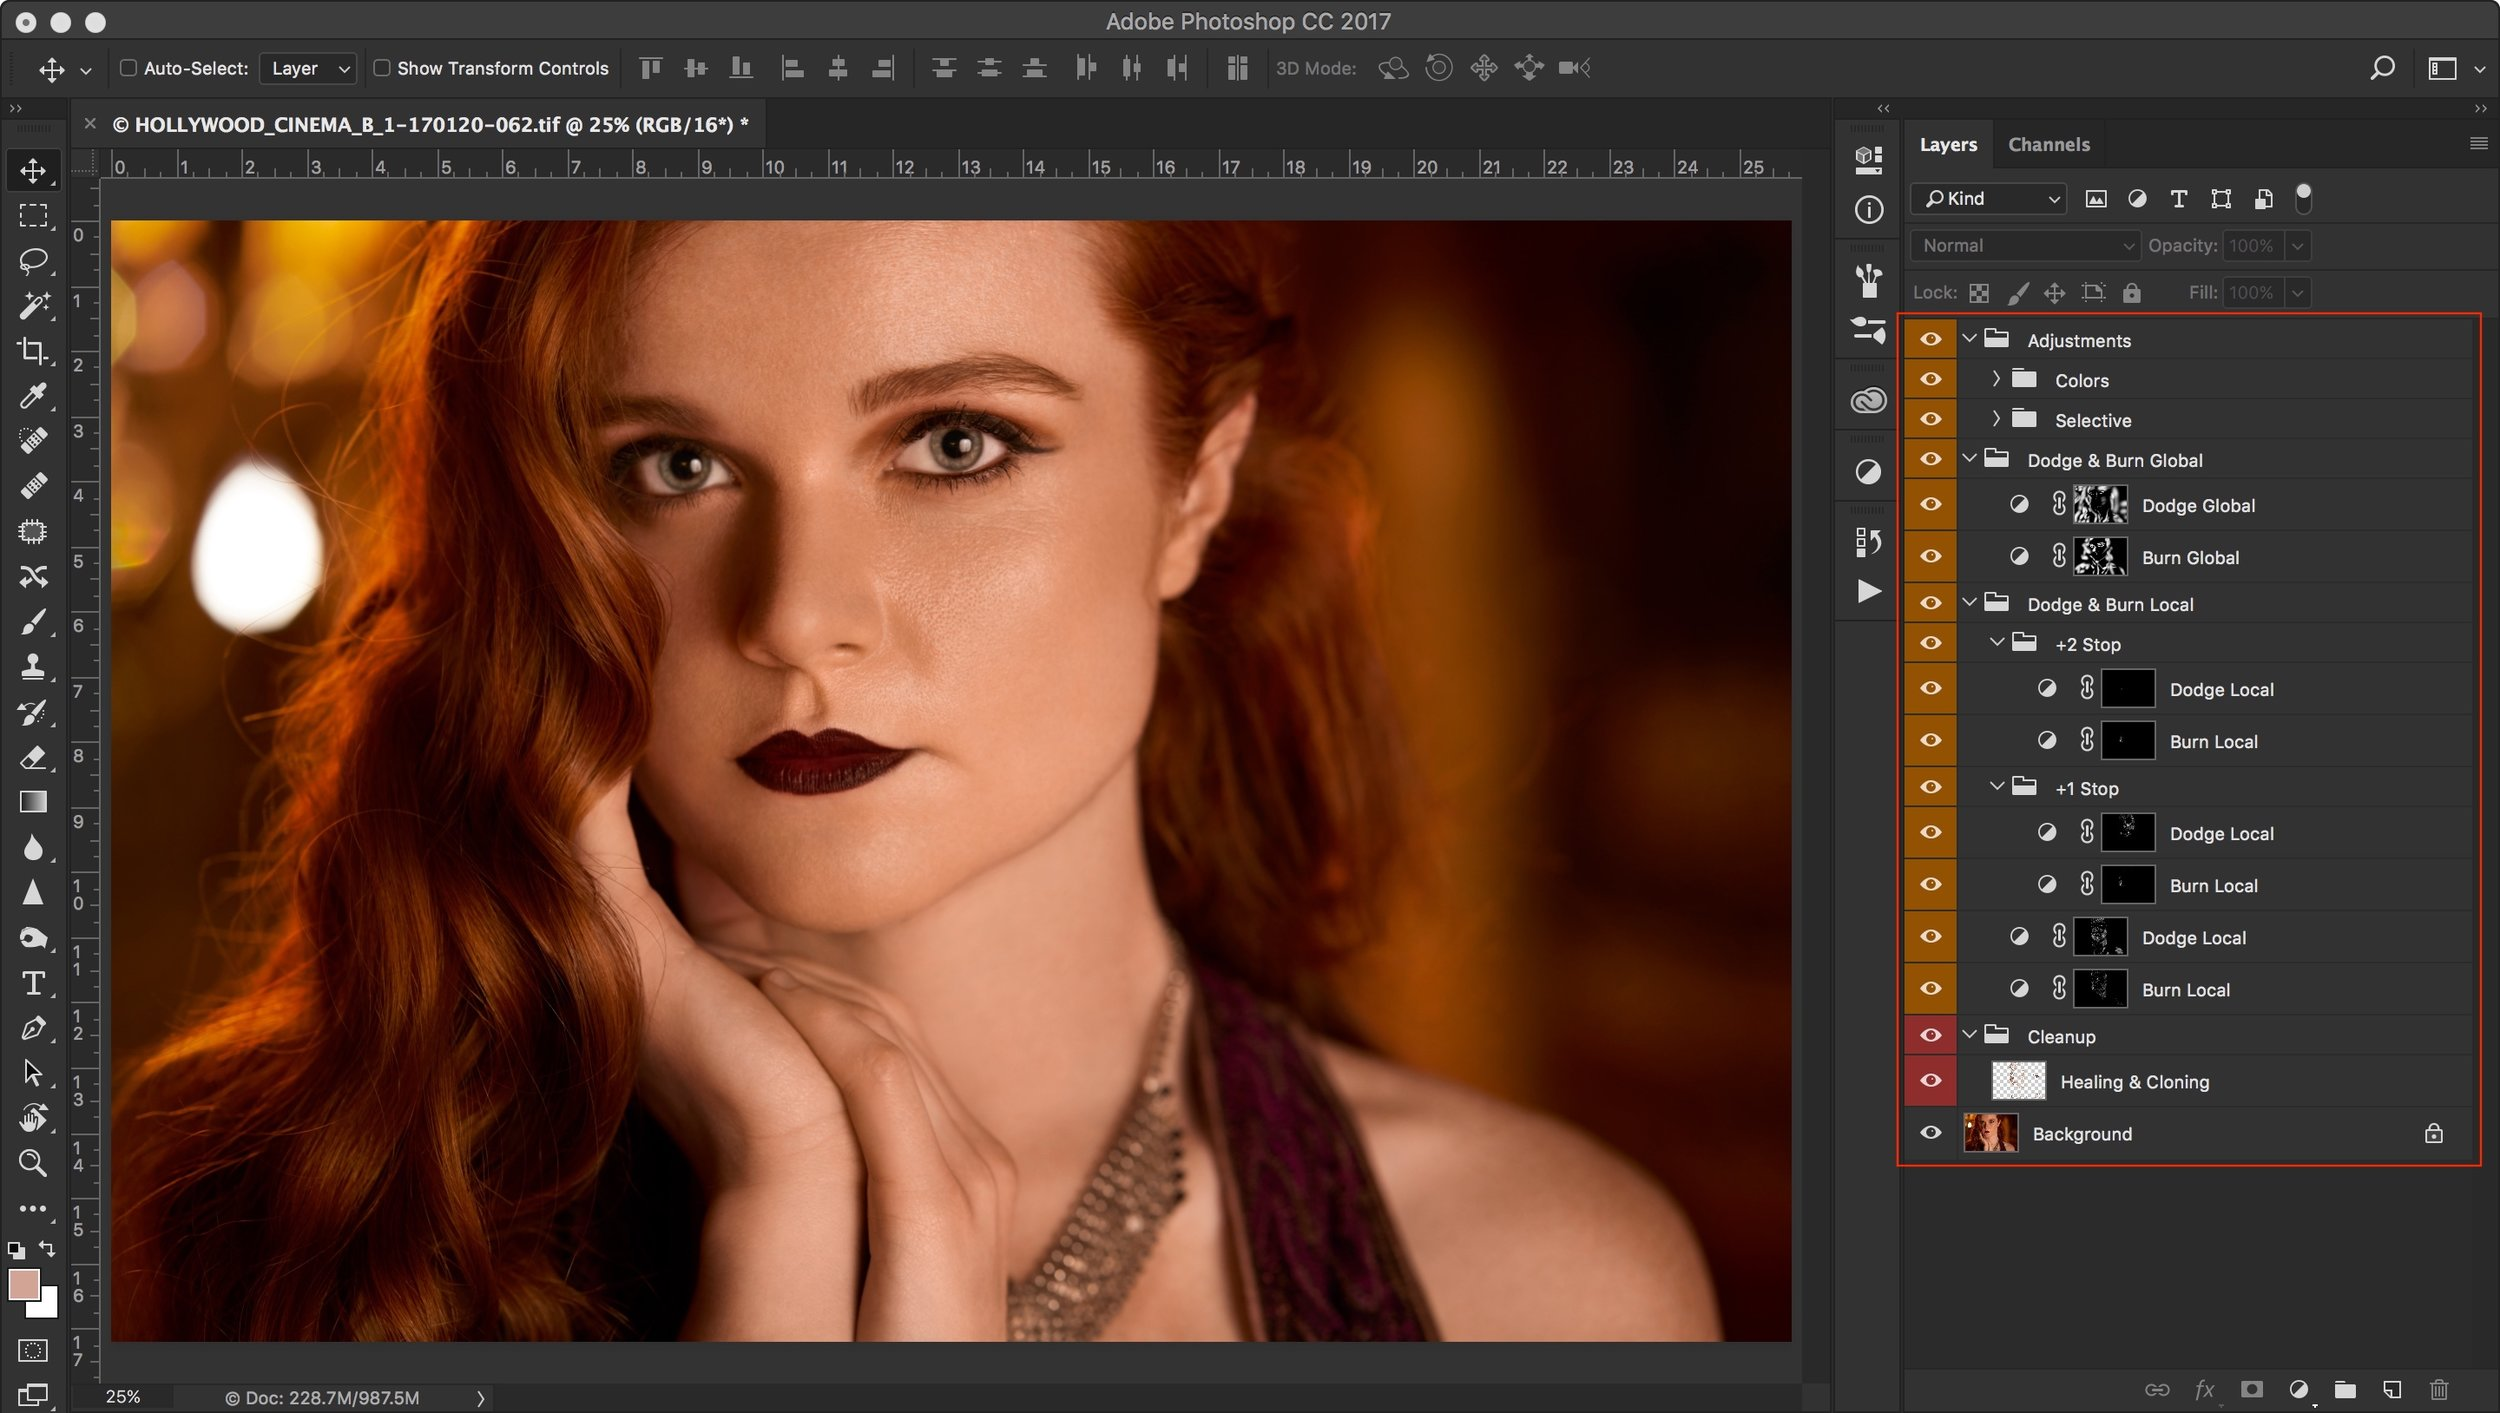 Retouch:  Images are retouched using Photoshop using nondestructive methods.  PS: I will dedicate a complete blog on nondestructive retouching process.